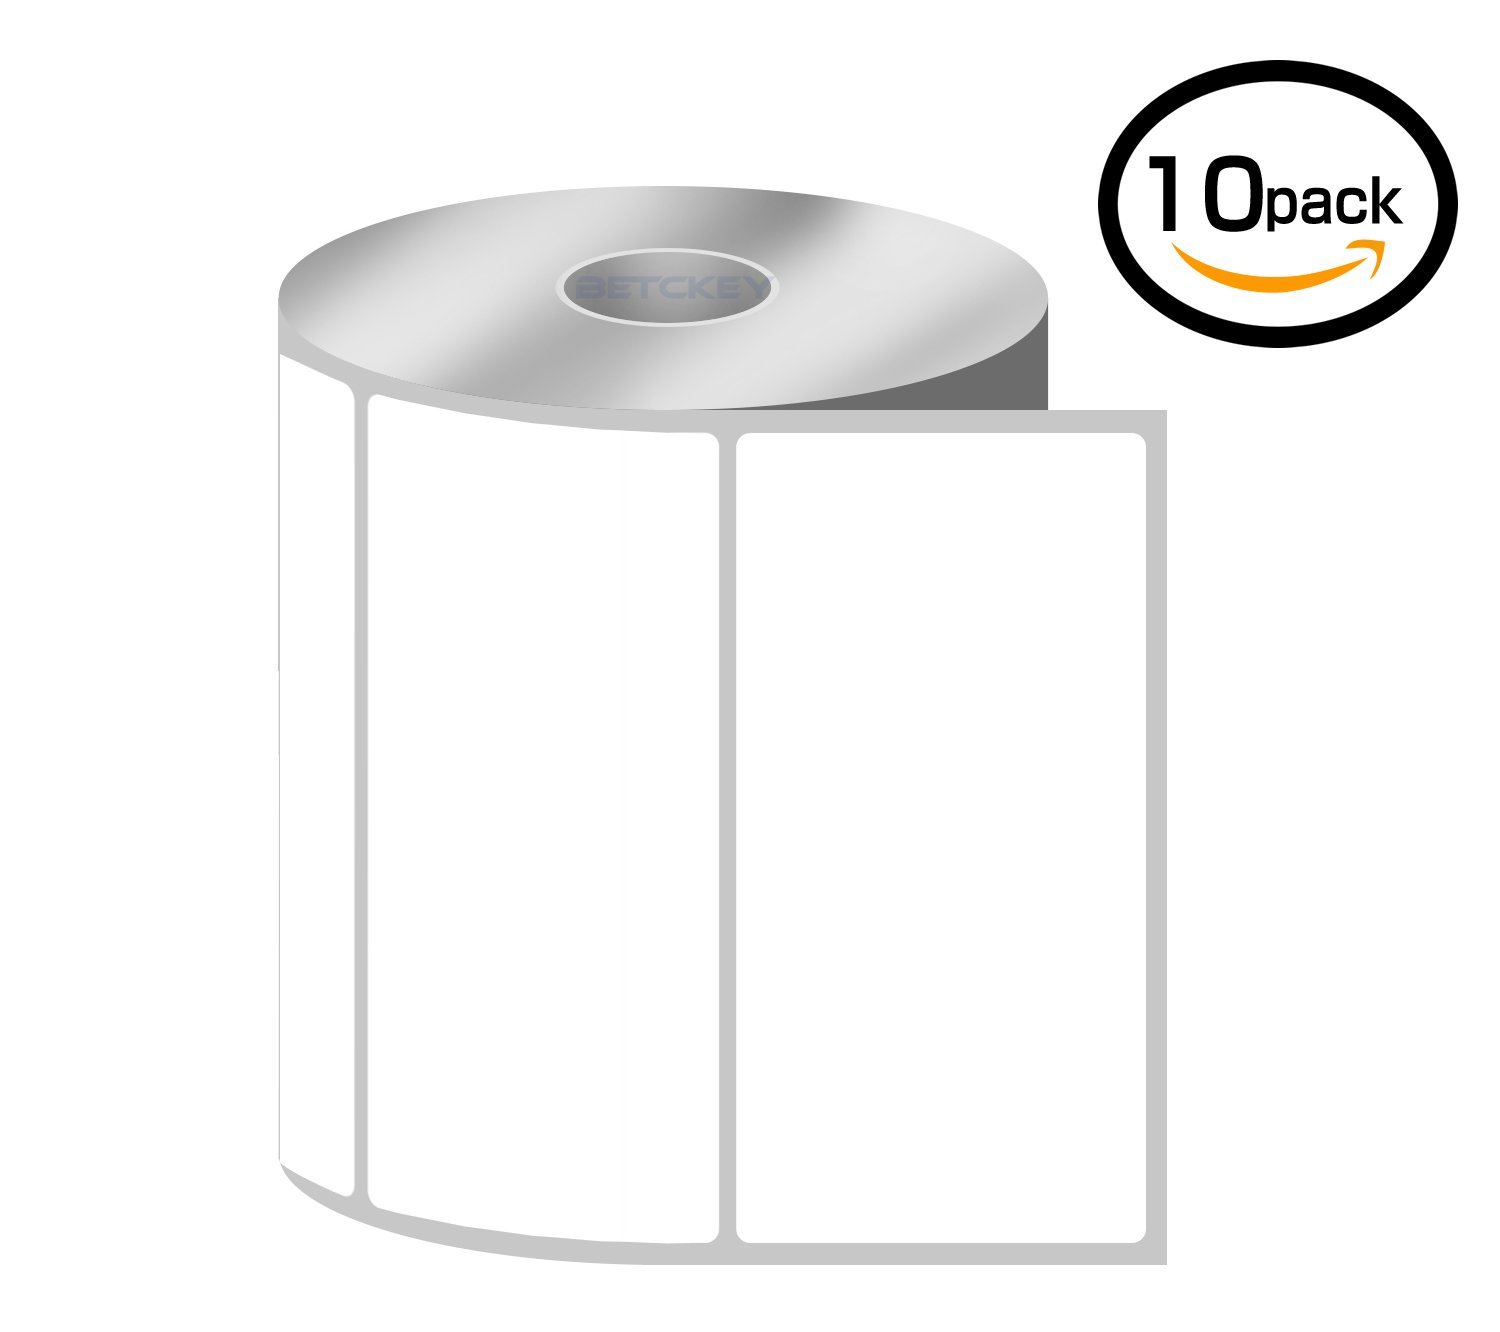 [10 Rolls, 750/Roll] 4'' x 2'' Direct Thermal Zebra/Eltron Compatible Labels - Premium Resolution & Adhesive by BETCKEY (Image #1)